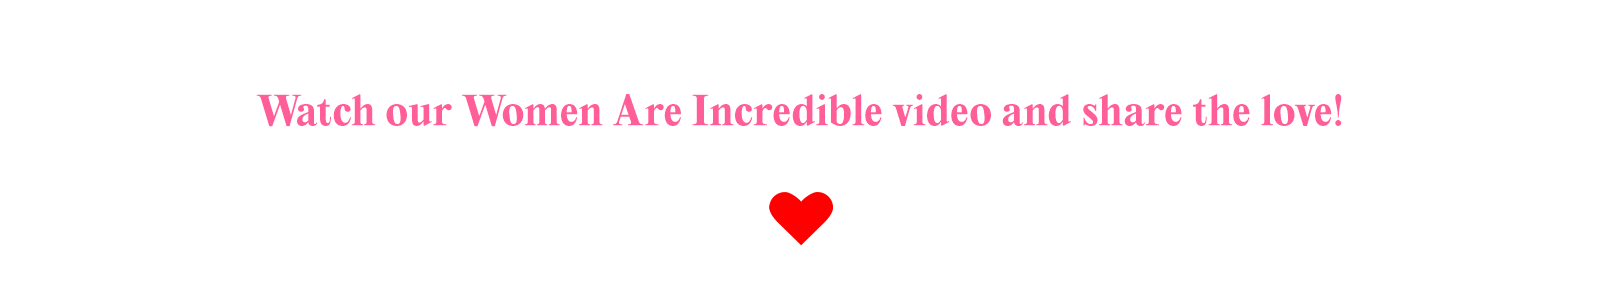 Watch the Women Are Incredible video